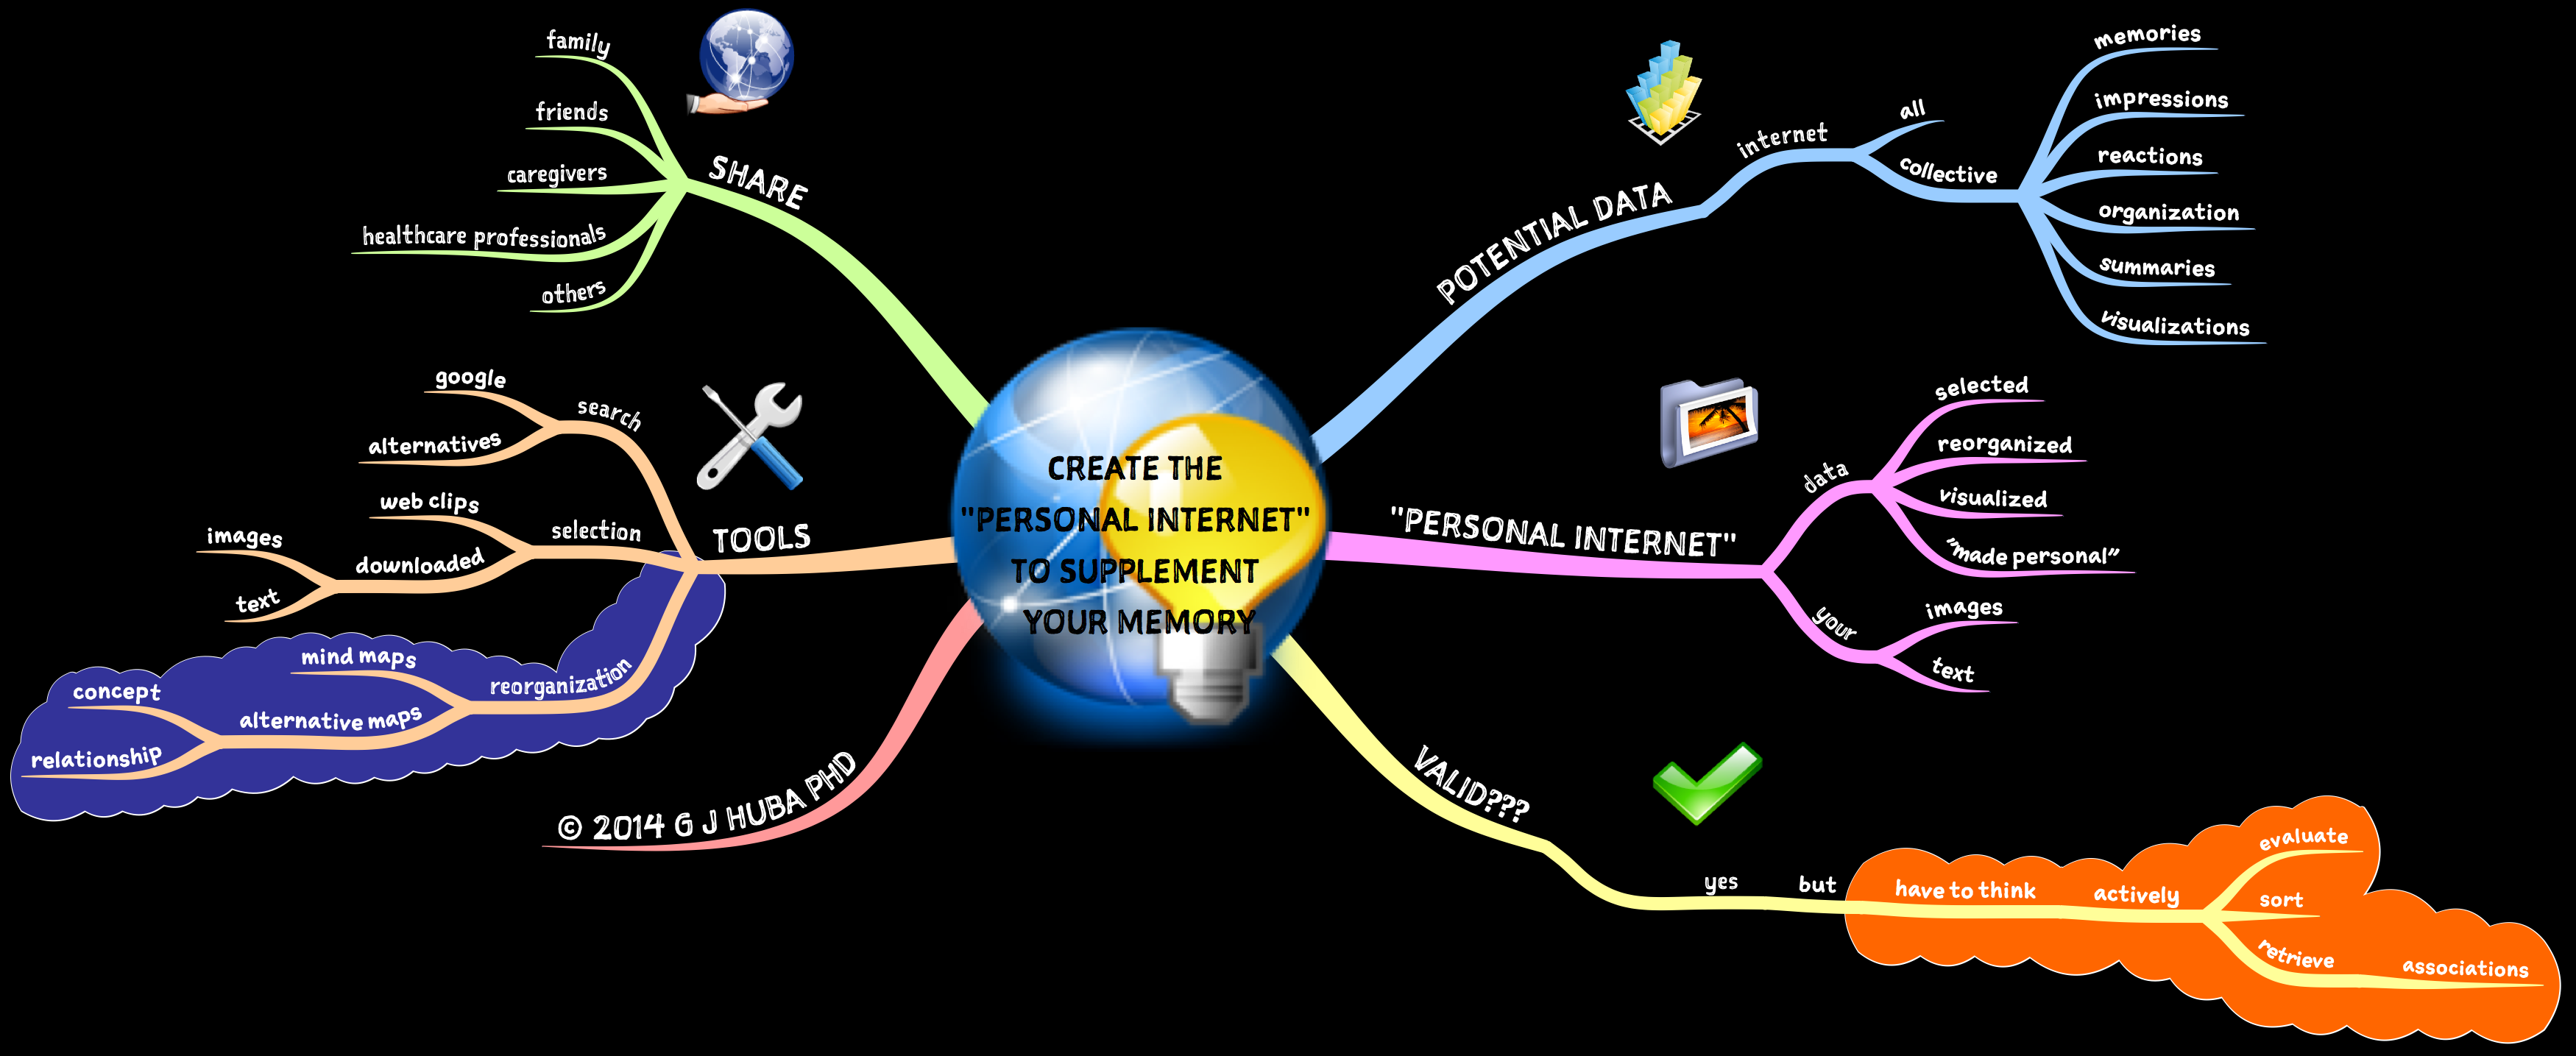 CREATE THE  PERSONAL INTERNET  TO SUPPLEMENT  YOUR MEMORY